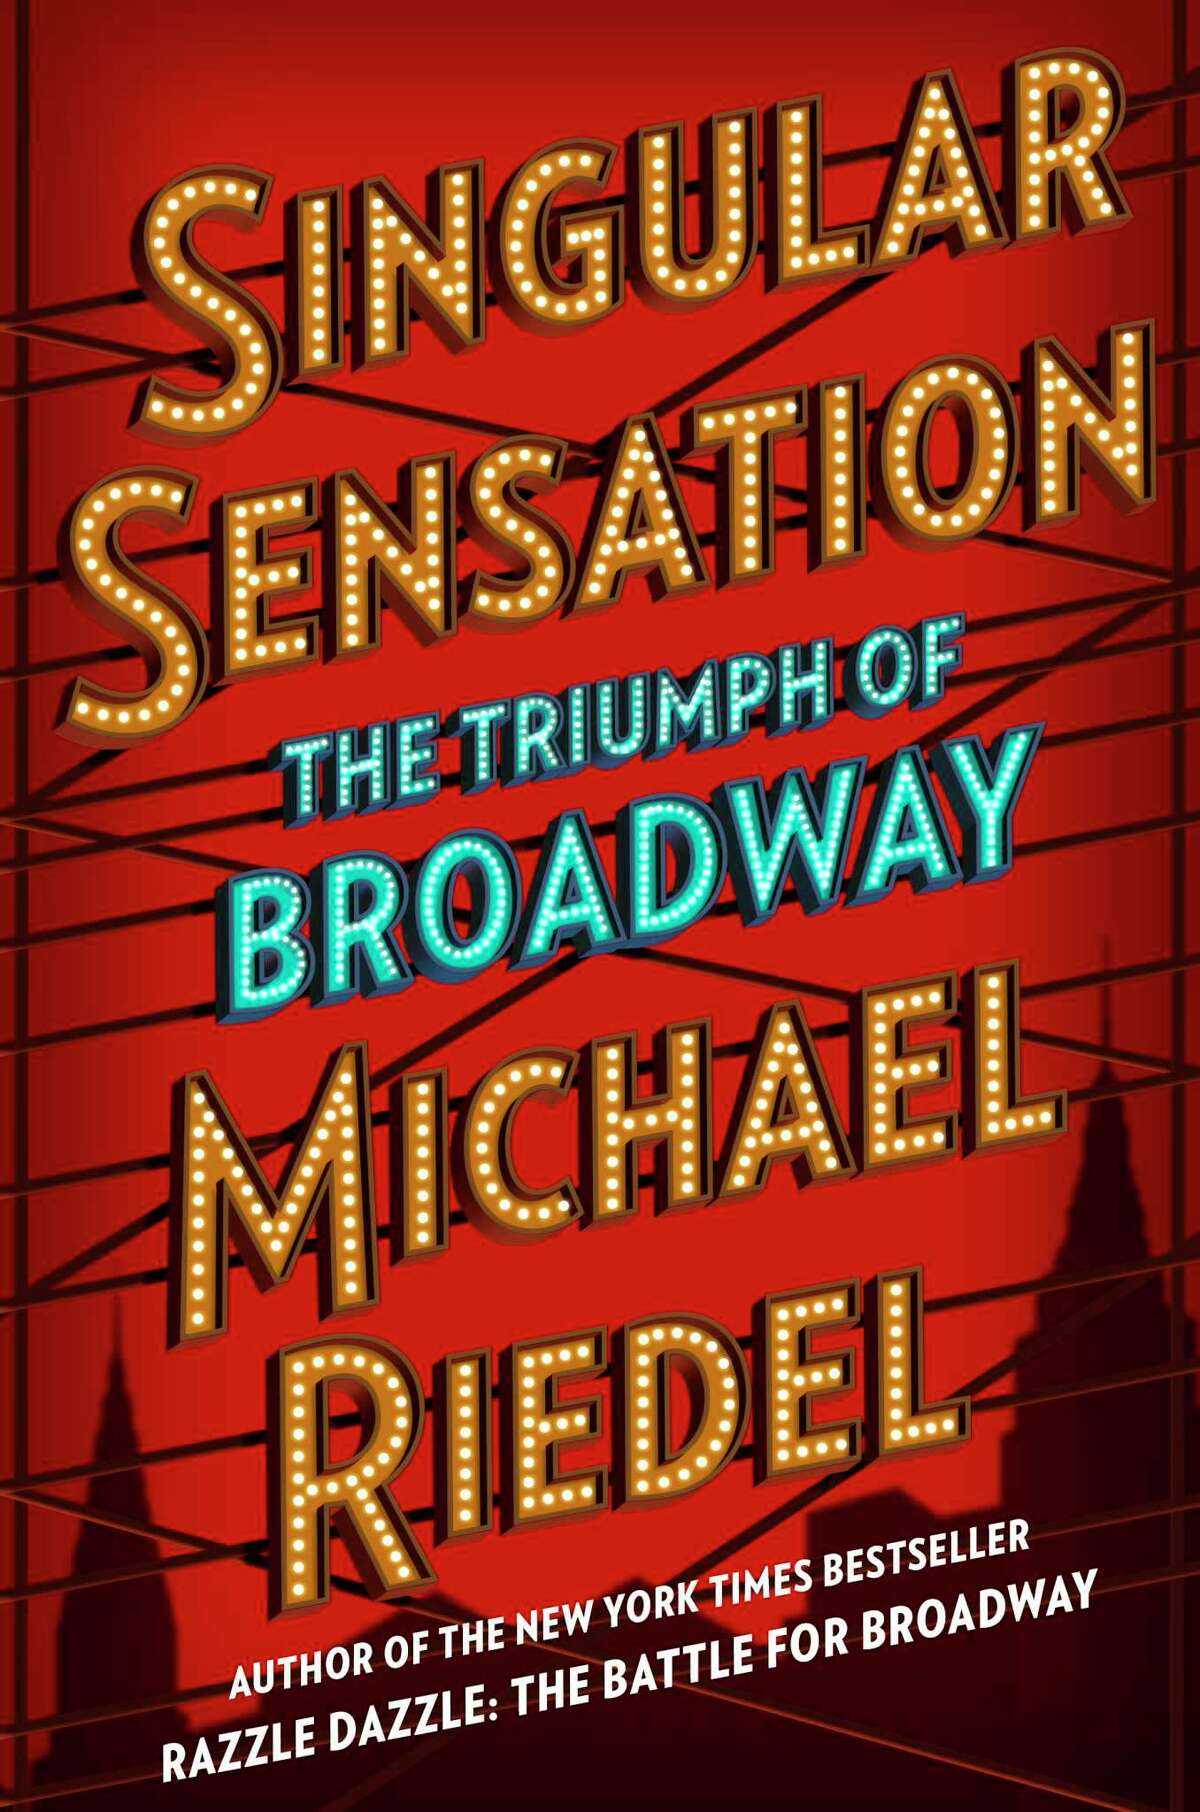 Michael Riedel, theater critic and longtime Broadway columnist for the New York Post, will be interviewed about his new book,